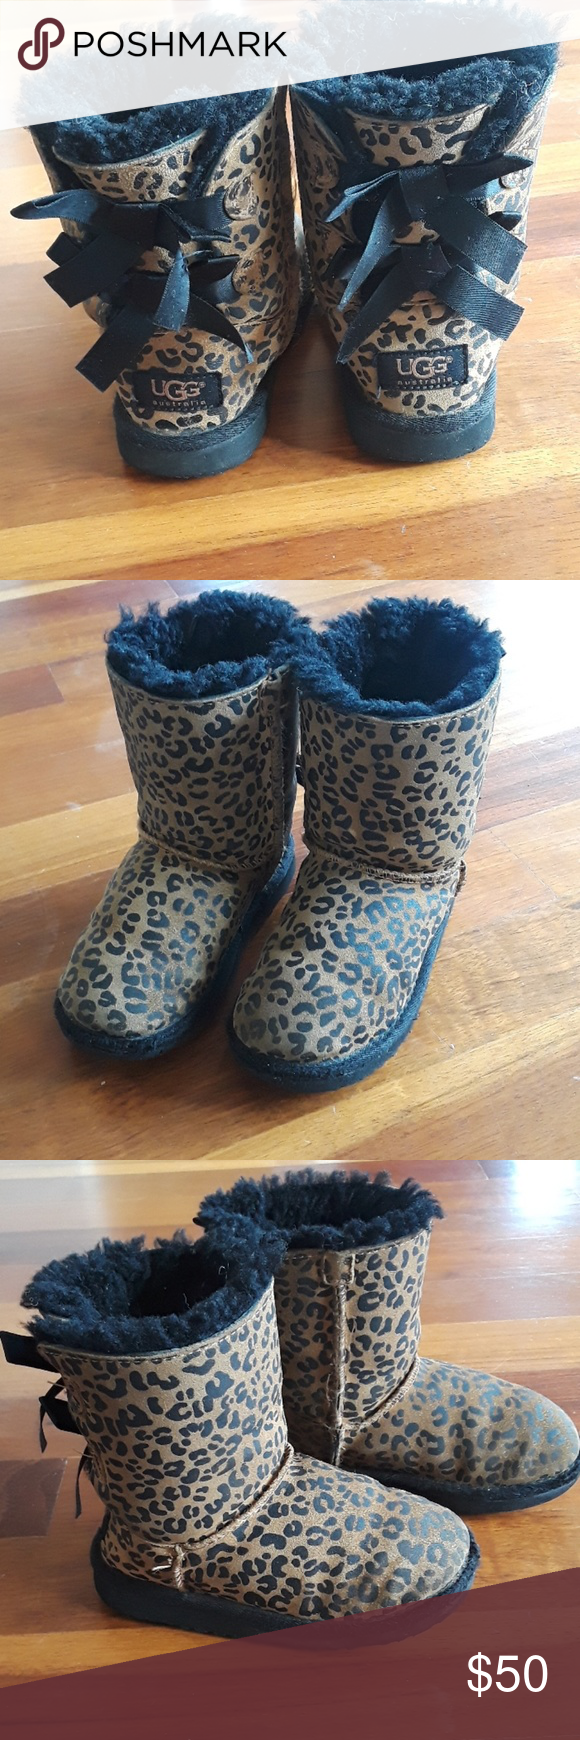 UGG bailey cheetah tie boots size 11 Girls size 11 ugg bailey boots. Very cute and trendy! Some light fabric missing as photoed in last picture of right boot. UGG Shoes Boots #uggbootsoutfitblackgirl UGG bailey cheetah tie boots size 11 Girls size 11 ugg bailey boots. Very cute and trendy! Some light fabric missing as photoed in last picture of right boot. UGG Shoes Boots #uggbootsoutfitblackgirl